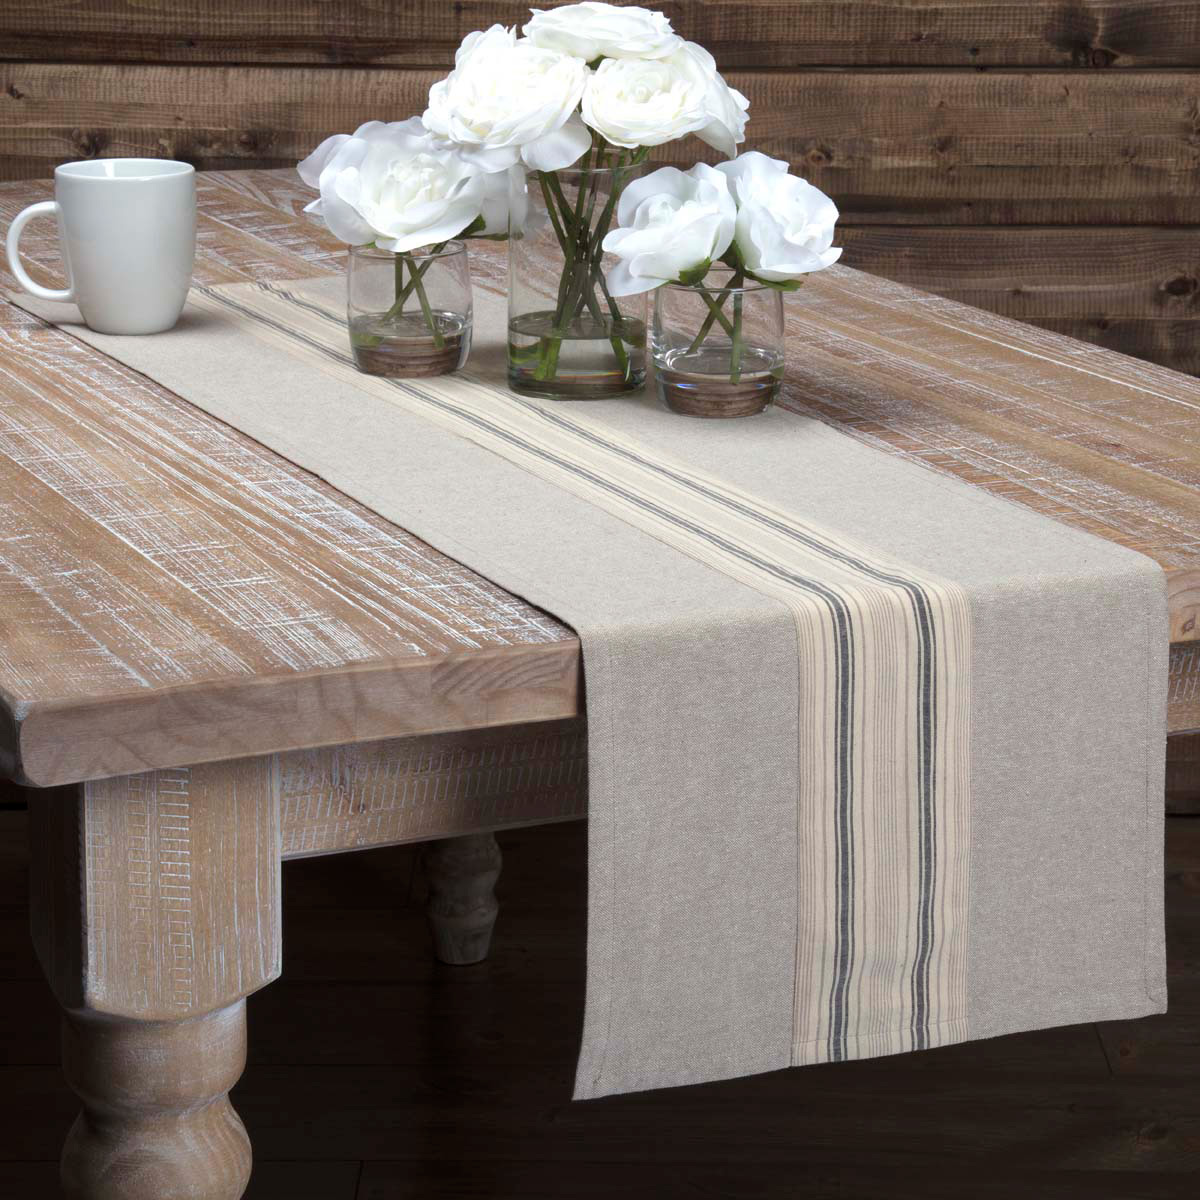 Sawyer Mill Table Runner, by VHC Brands.